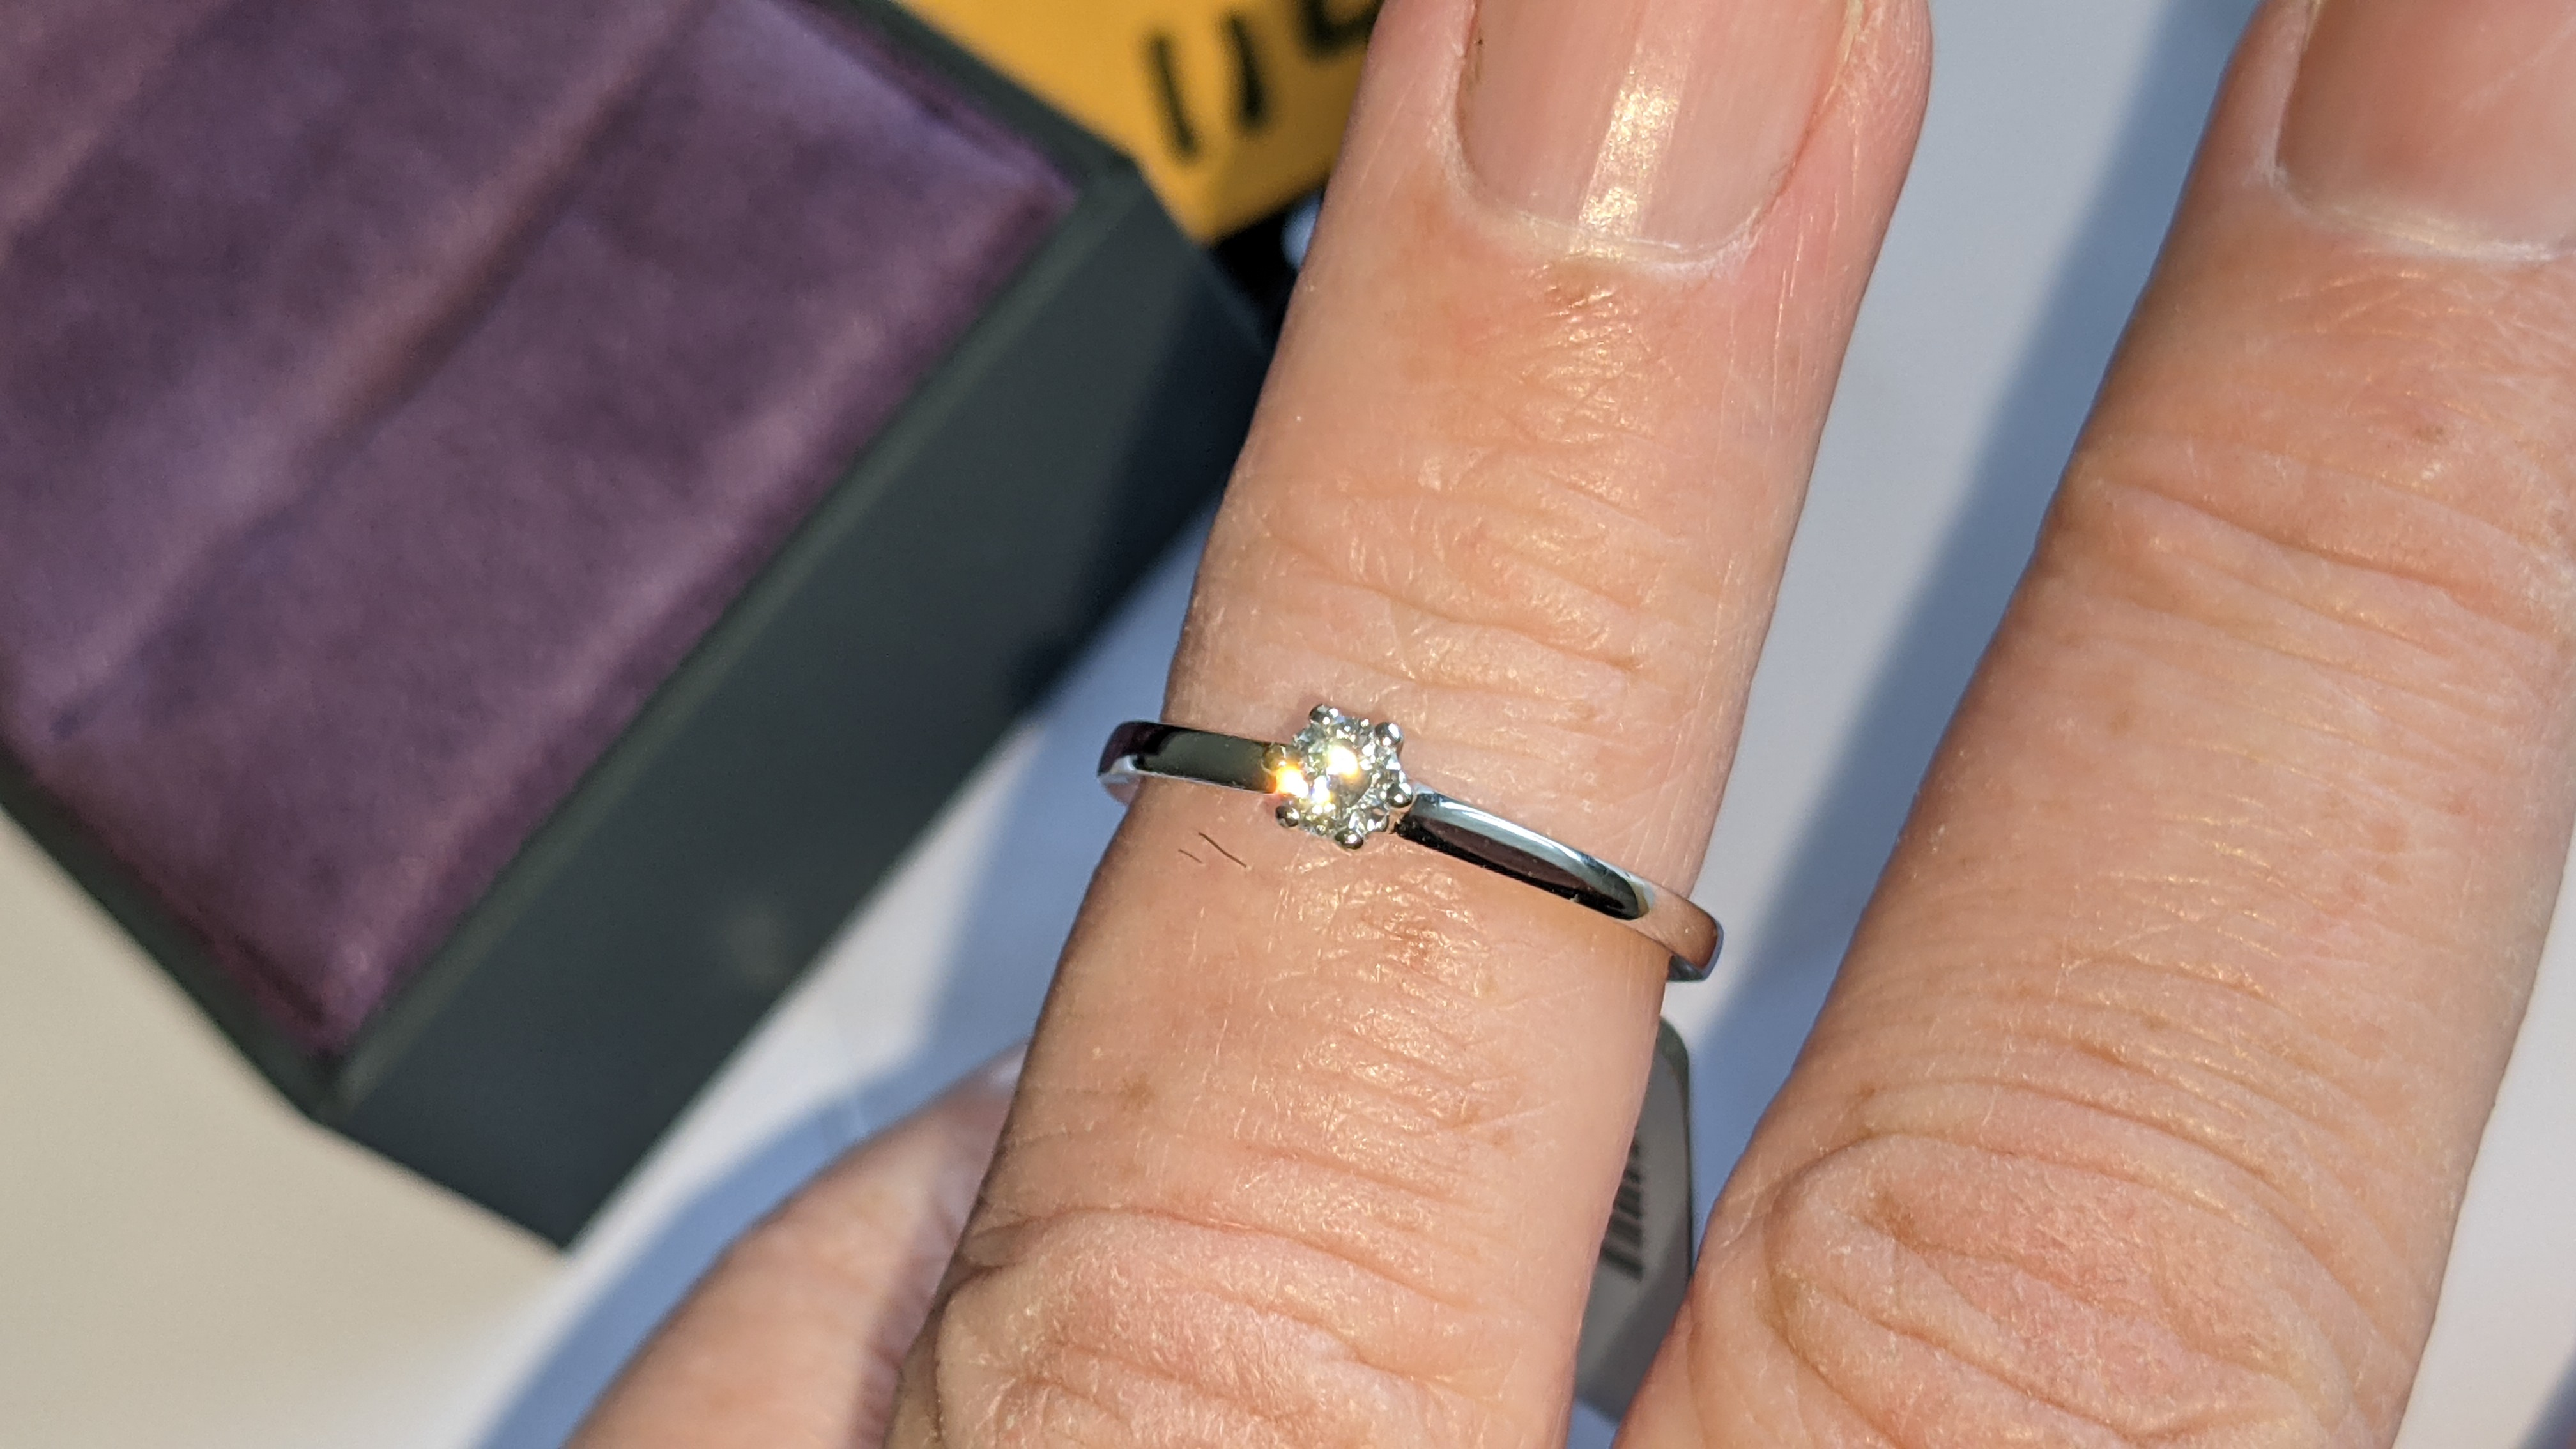 18ct white gold ring with 0.20ct G/Si brilliant cut diamond RRP £1,152 - Image 15 of 16